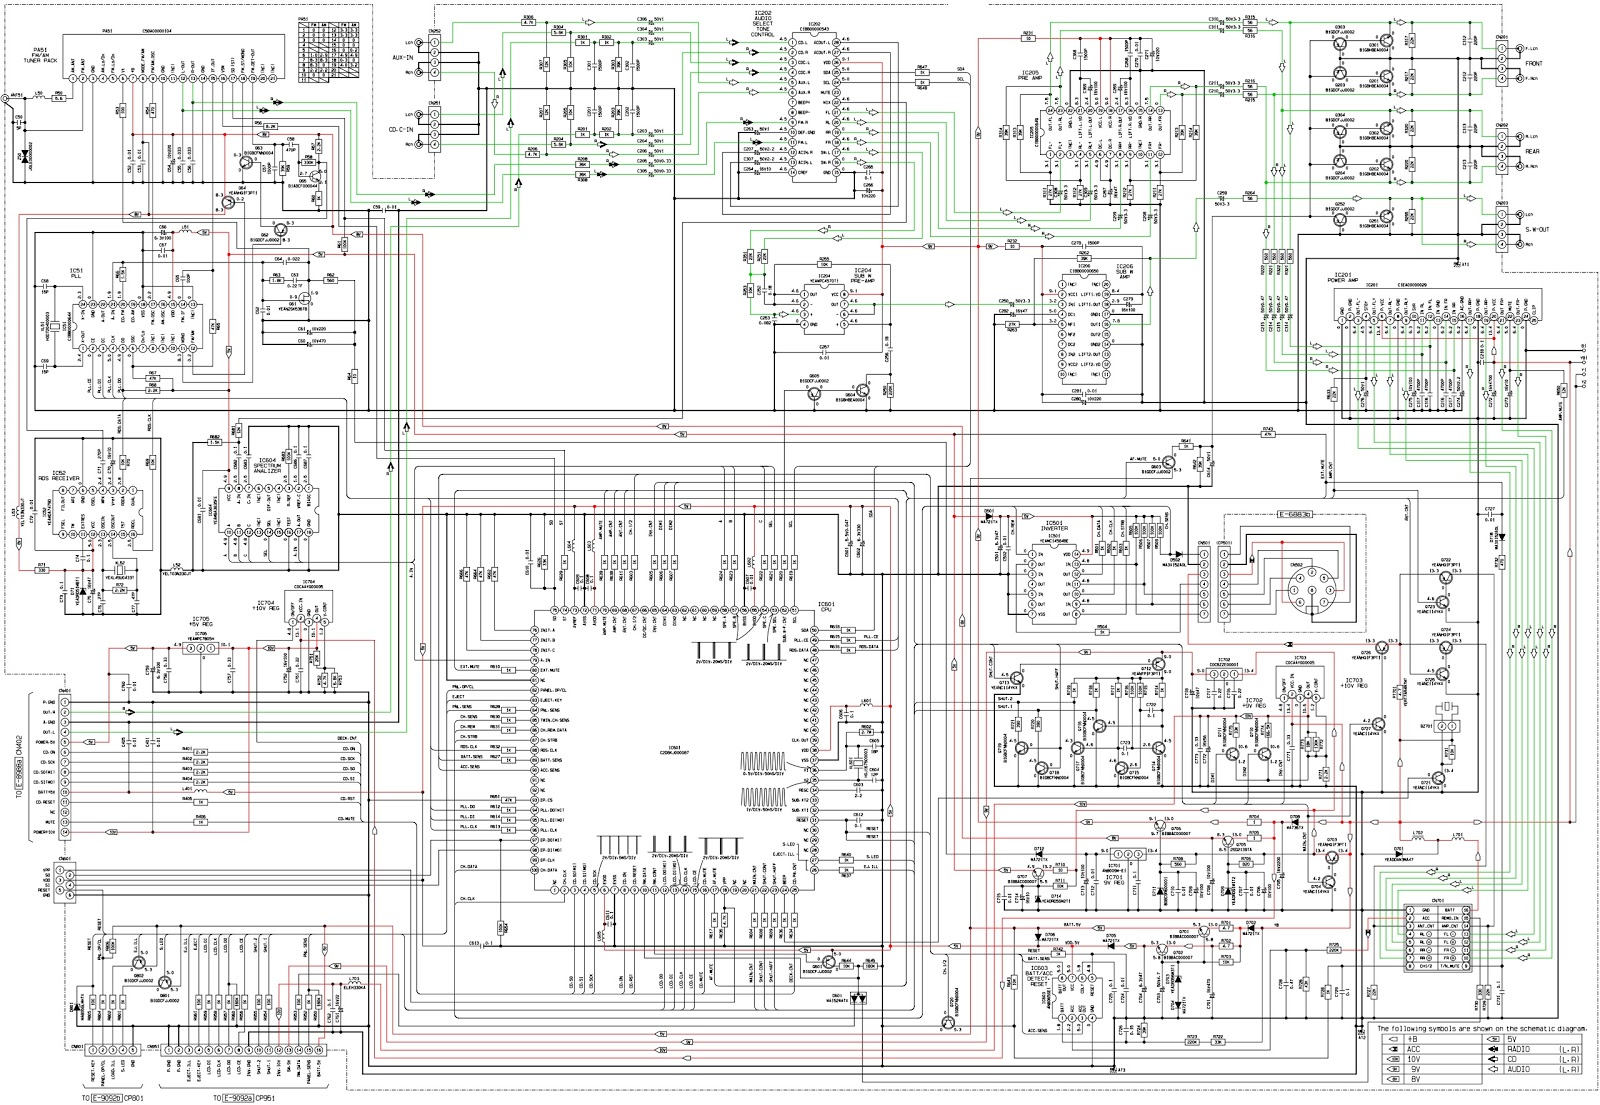 Panasonic cq dfx802 schematic diagram schematic diagrams cq dfx802 panasonic car amplifier circuit diagram asfbconference2016 Images